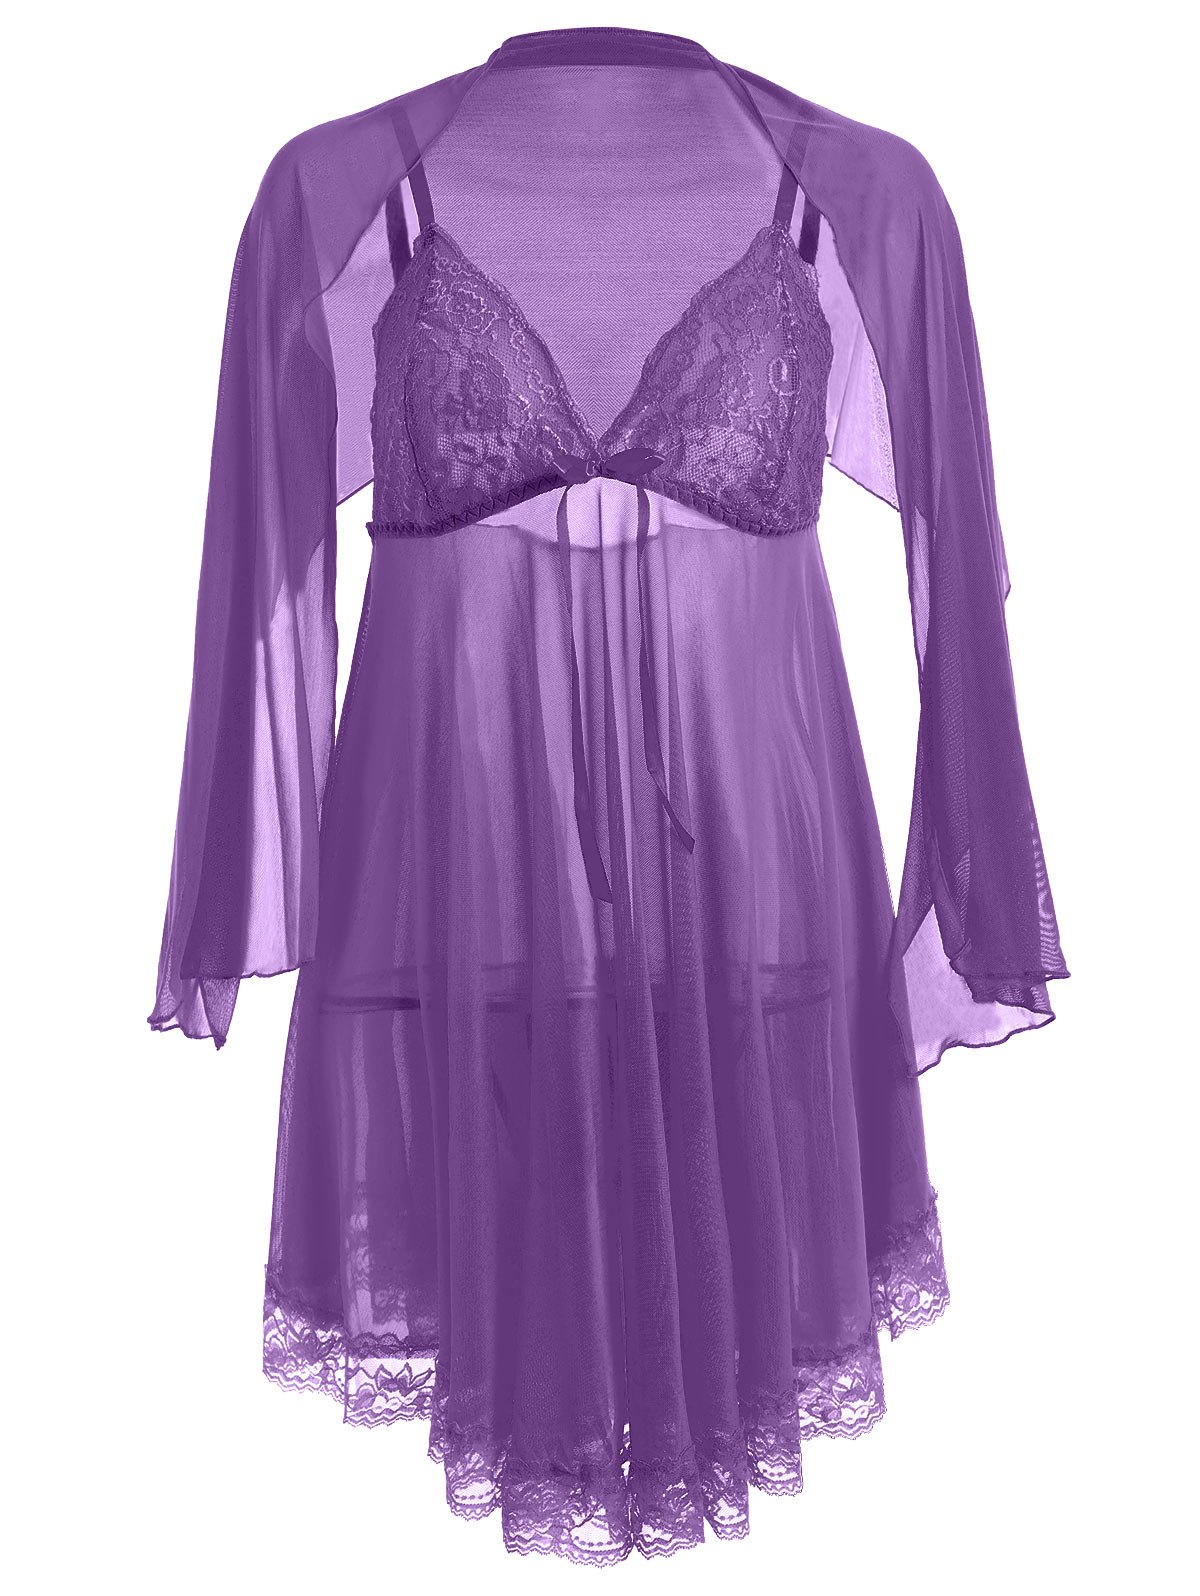 Plus Size Mesh Sheer Babydoll Dress with Cape slip mesh sheer plus size babydoll